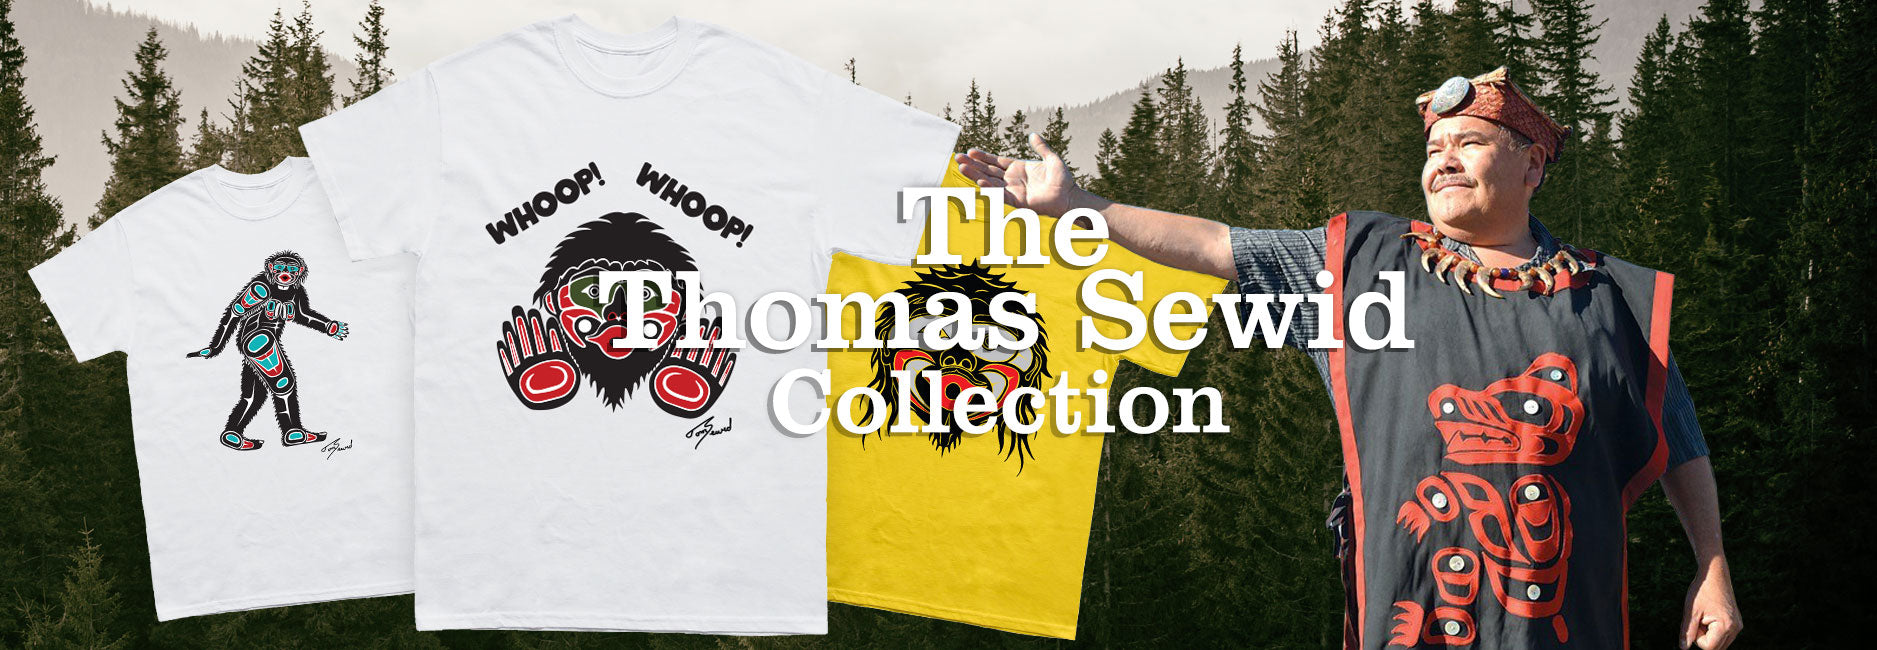 Thomas Sewid Collection